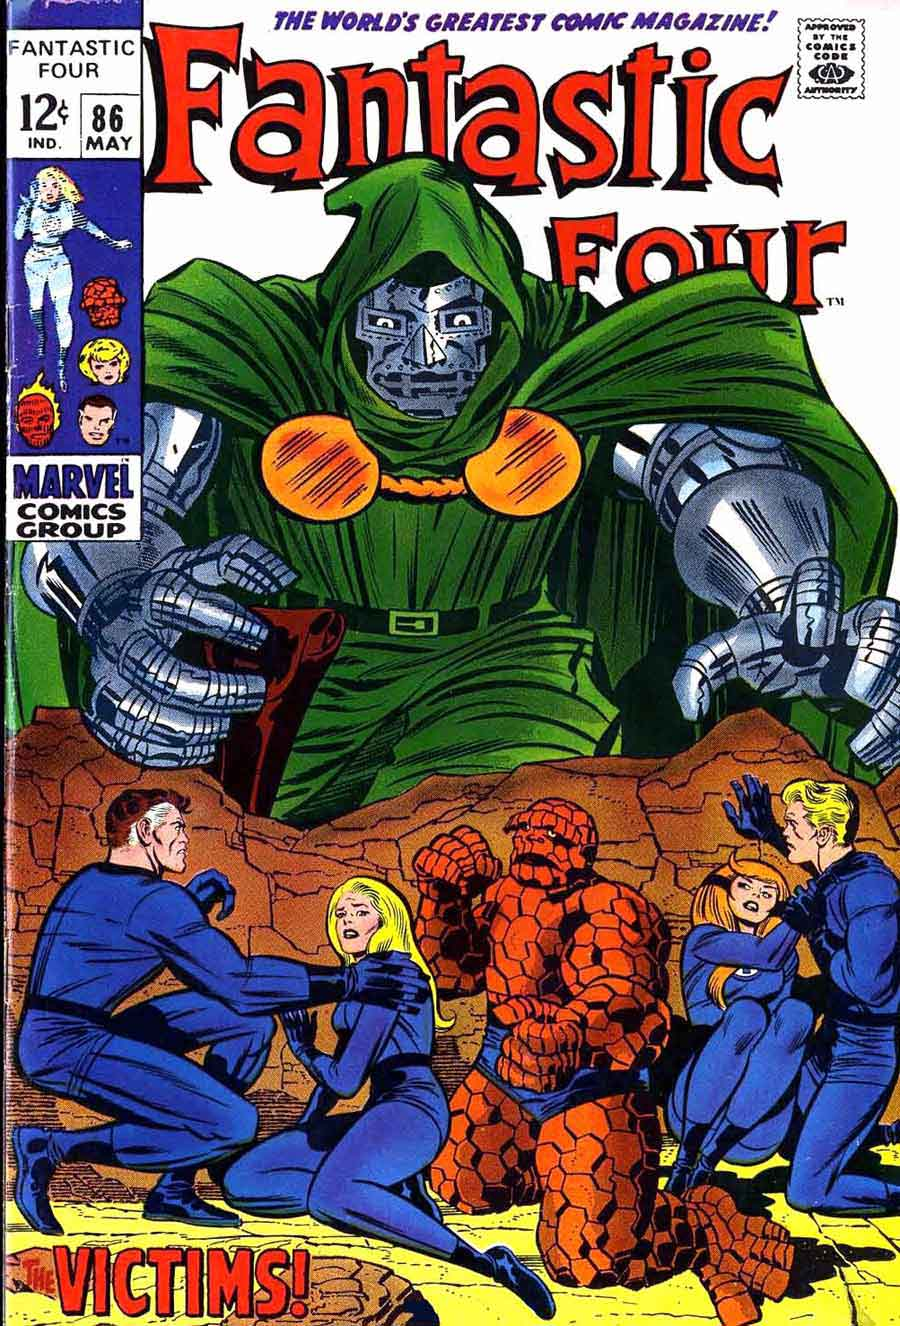 Marvel Comic Book Cover Art : Fantastic four jack kirby art cover pencil ink